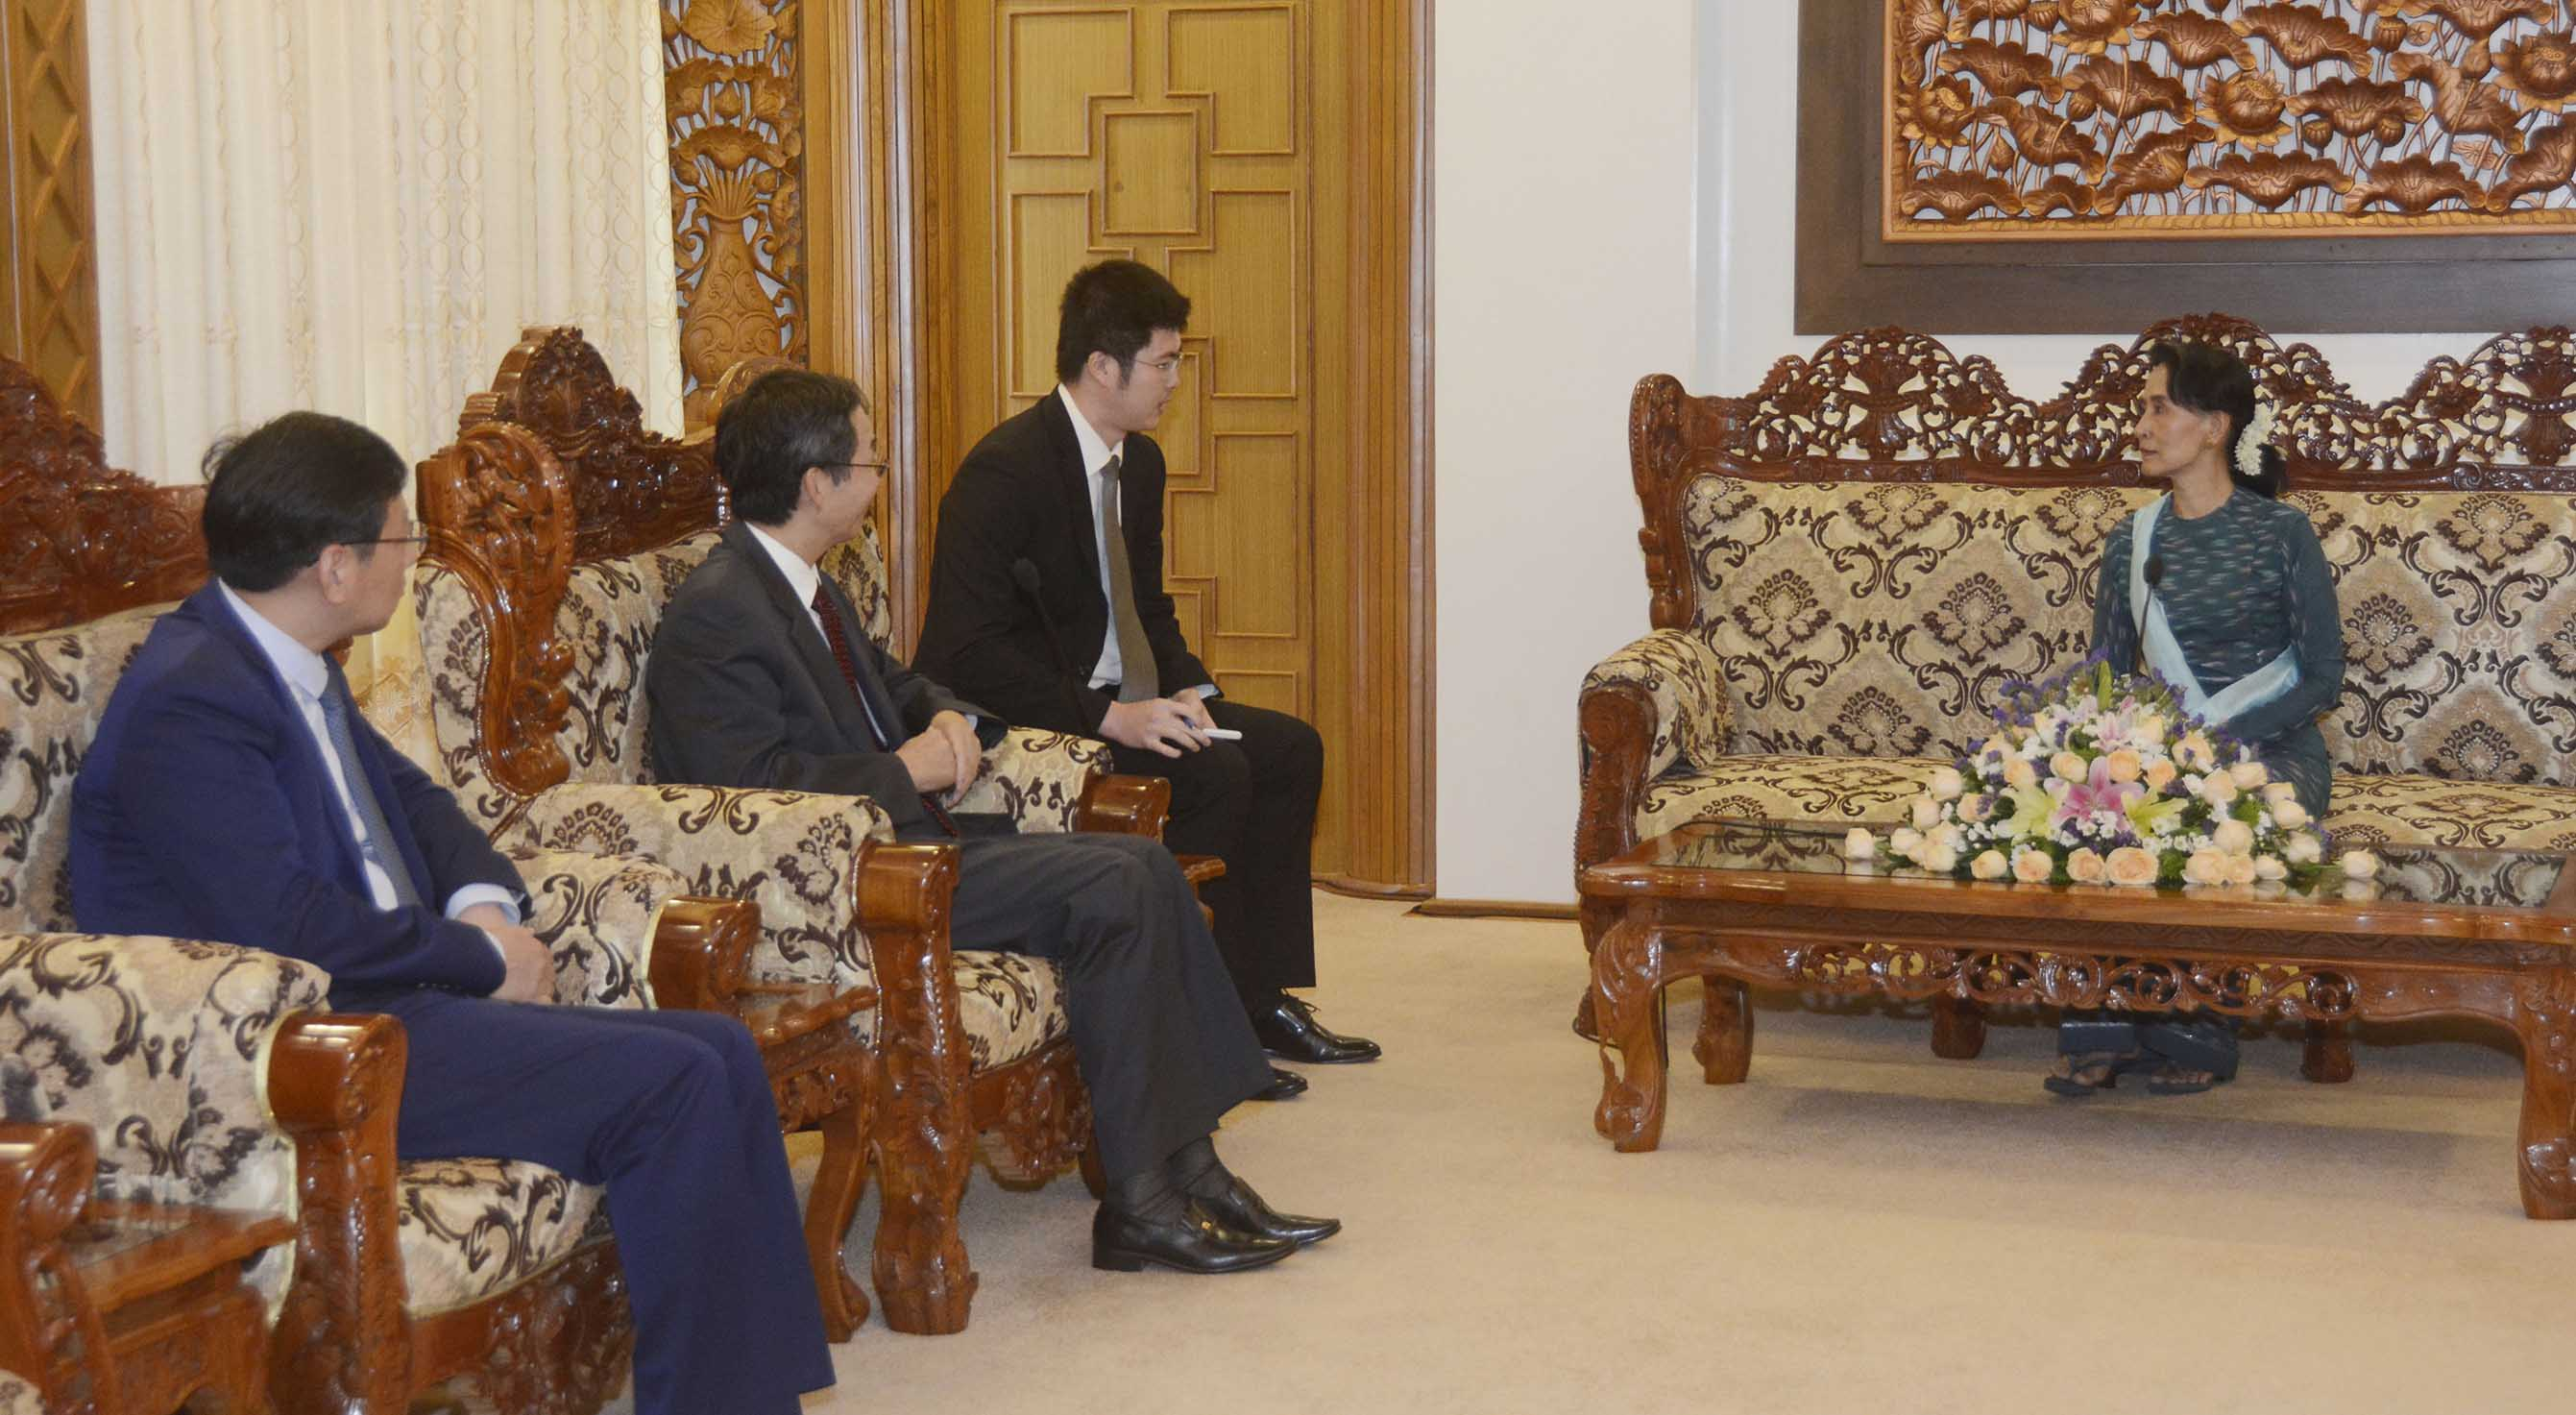 State Counsellor Daw Aung San Suu Kyi meets with Mr. Sun Guoxiang, Special Envoy for Asian Affairs of the Ministry of Foreign Affairs of the People's Republic of China in Nay Pyi Taw on 16 October 2017.Photo: MNA